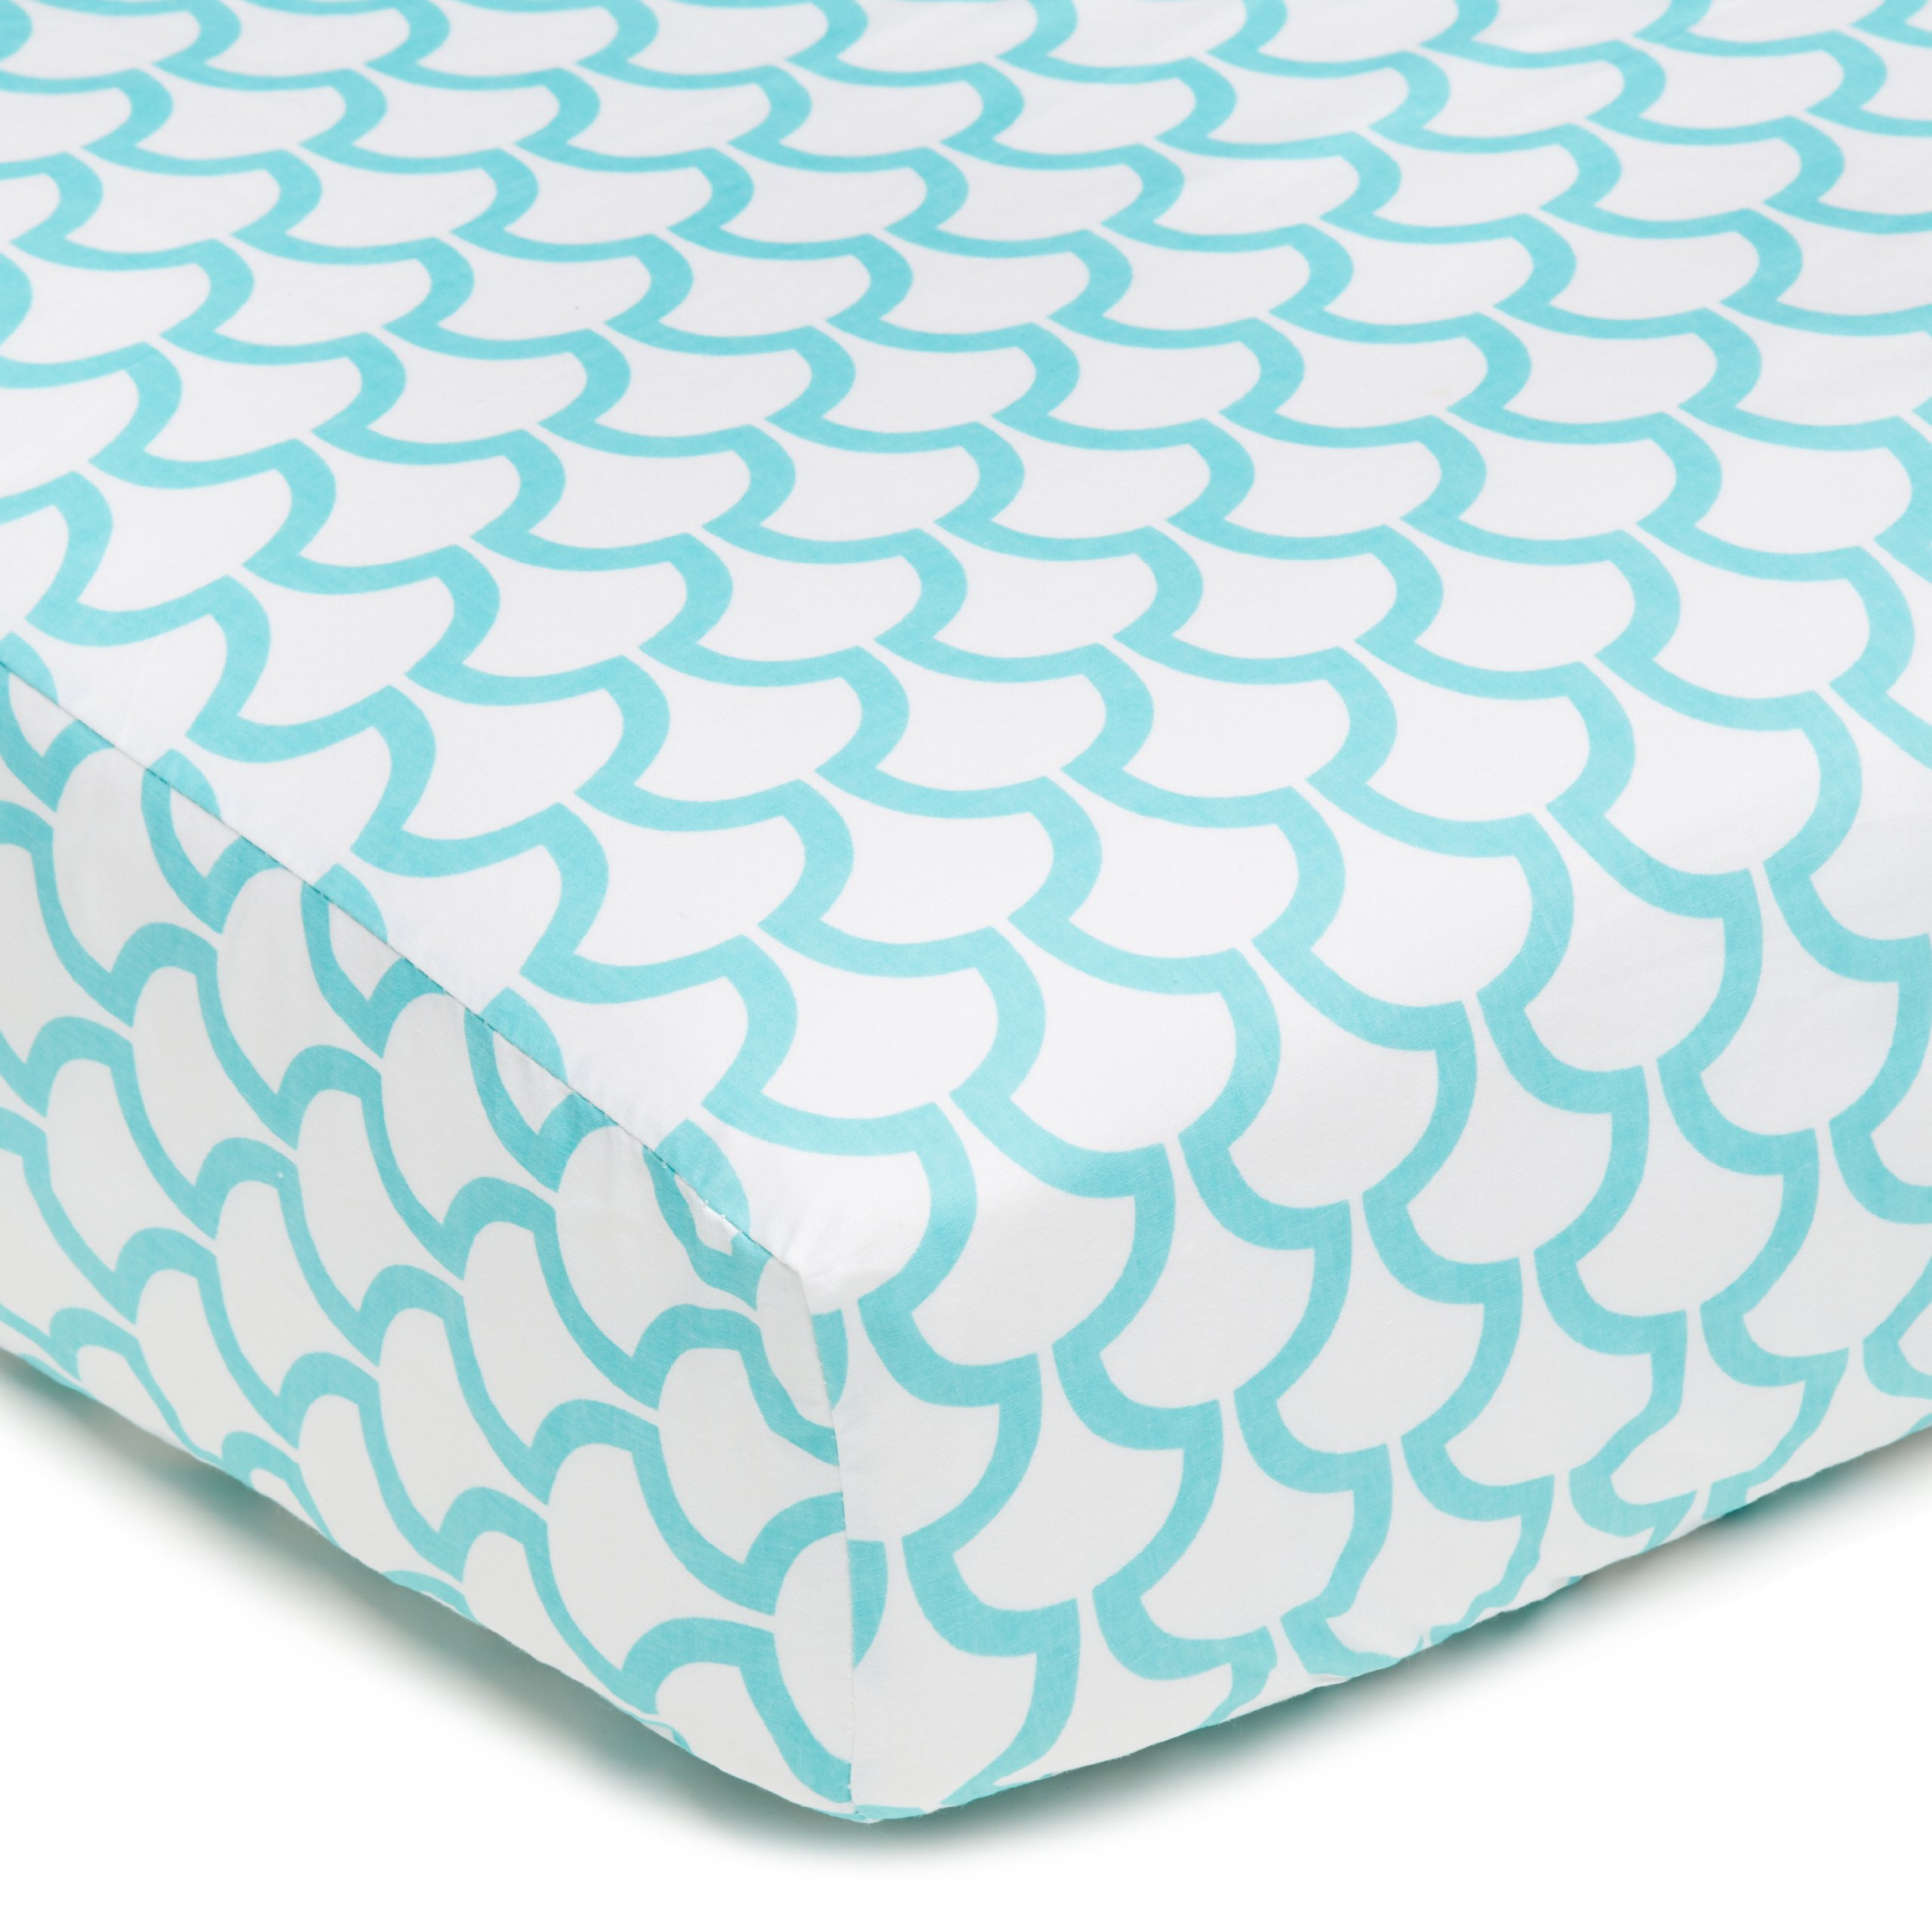 American Baby Company 100% Cotton Percale Fitted Crib Sheet for Standard Crib and Toddler Mattresses, Aqua Sea Waves